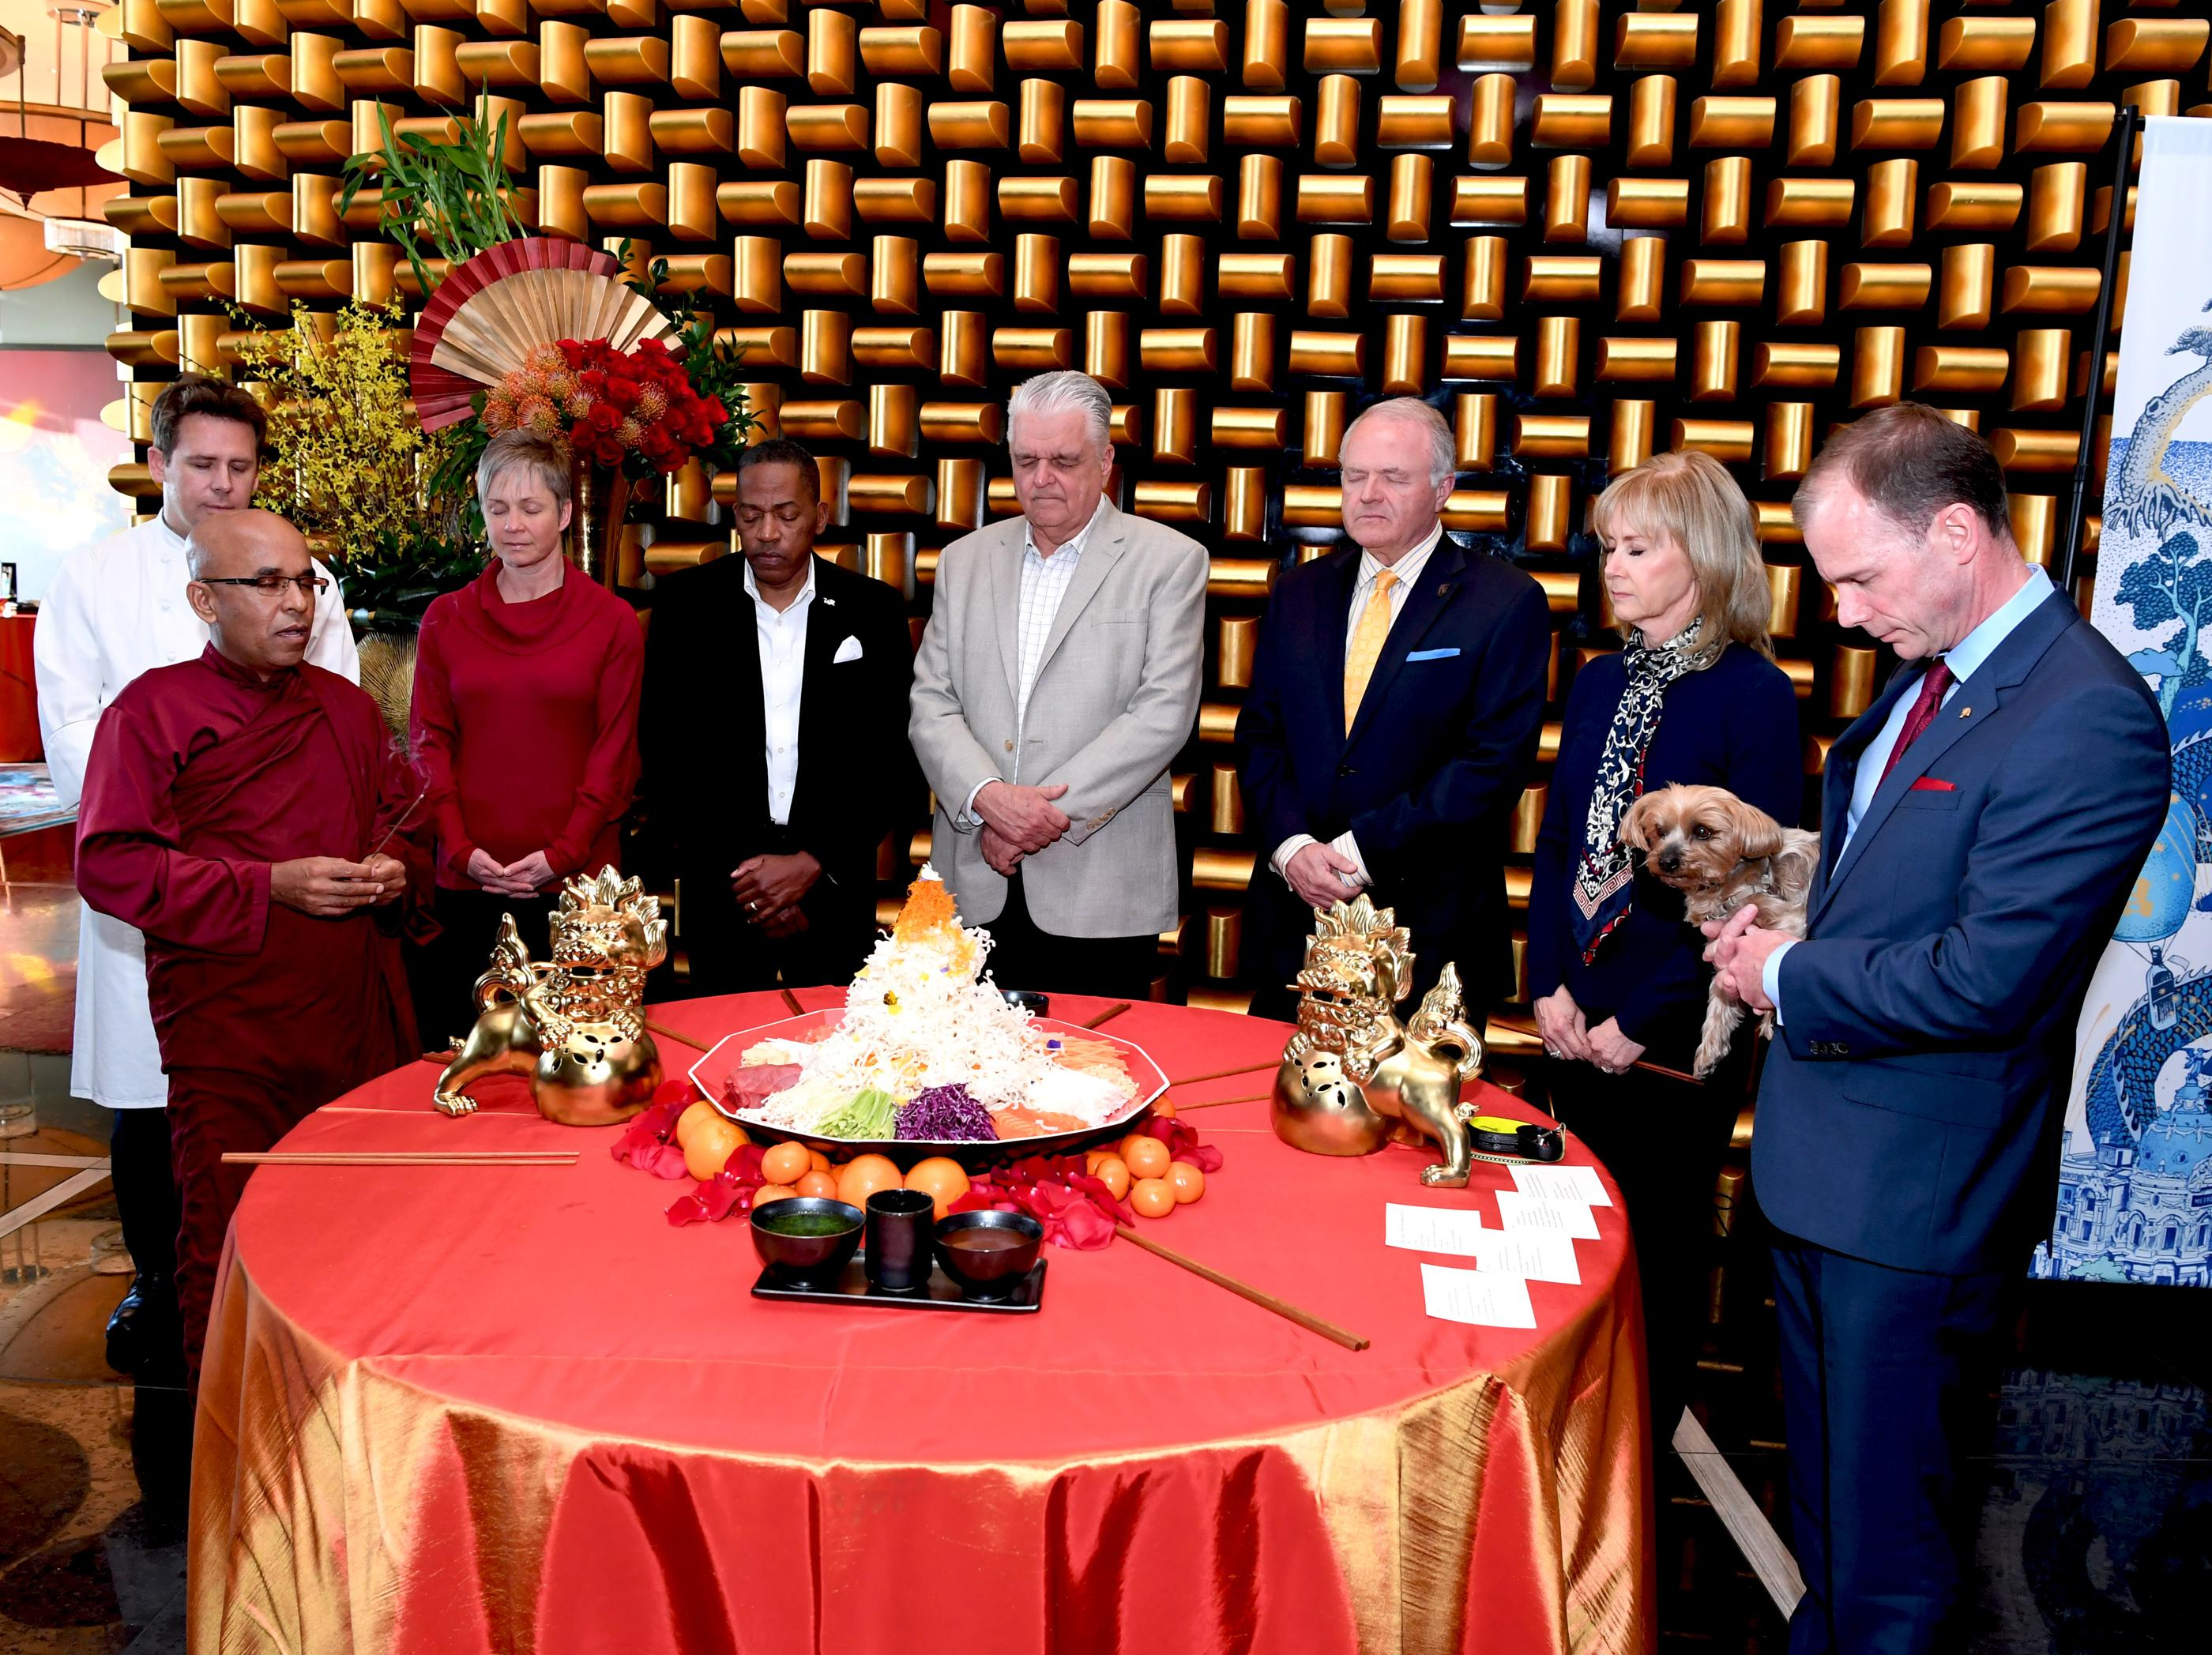 The Mandarin Oriental, Las Vegas celebrates the Chinese New Year, Year of the Dog with a special Yusheng Toss presentation. Pictured: (l-r) David Werlyu (back), Executive Chef Mandarin Oriental; Bhante Sujatha of the Blue Lotus Buddhist Temple; Ellen Charnley, wife of Donald Bowman; Lawrence Weekly, Clark County Commissioner; Steve Sisolak, Clark County Commissioner; Peter Sadowski, Executive Vice President and Chief Legal Officer for Vegas Golden Knights; Denise Decker-Sadowski, wife of Peter Sadowski; and Donald Bowman, General Manager Mandarin Oriental. Thursday, February 15, 2018. CREDIT: Glenn Pinkerton/Las Vegas News Bureau